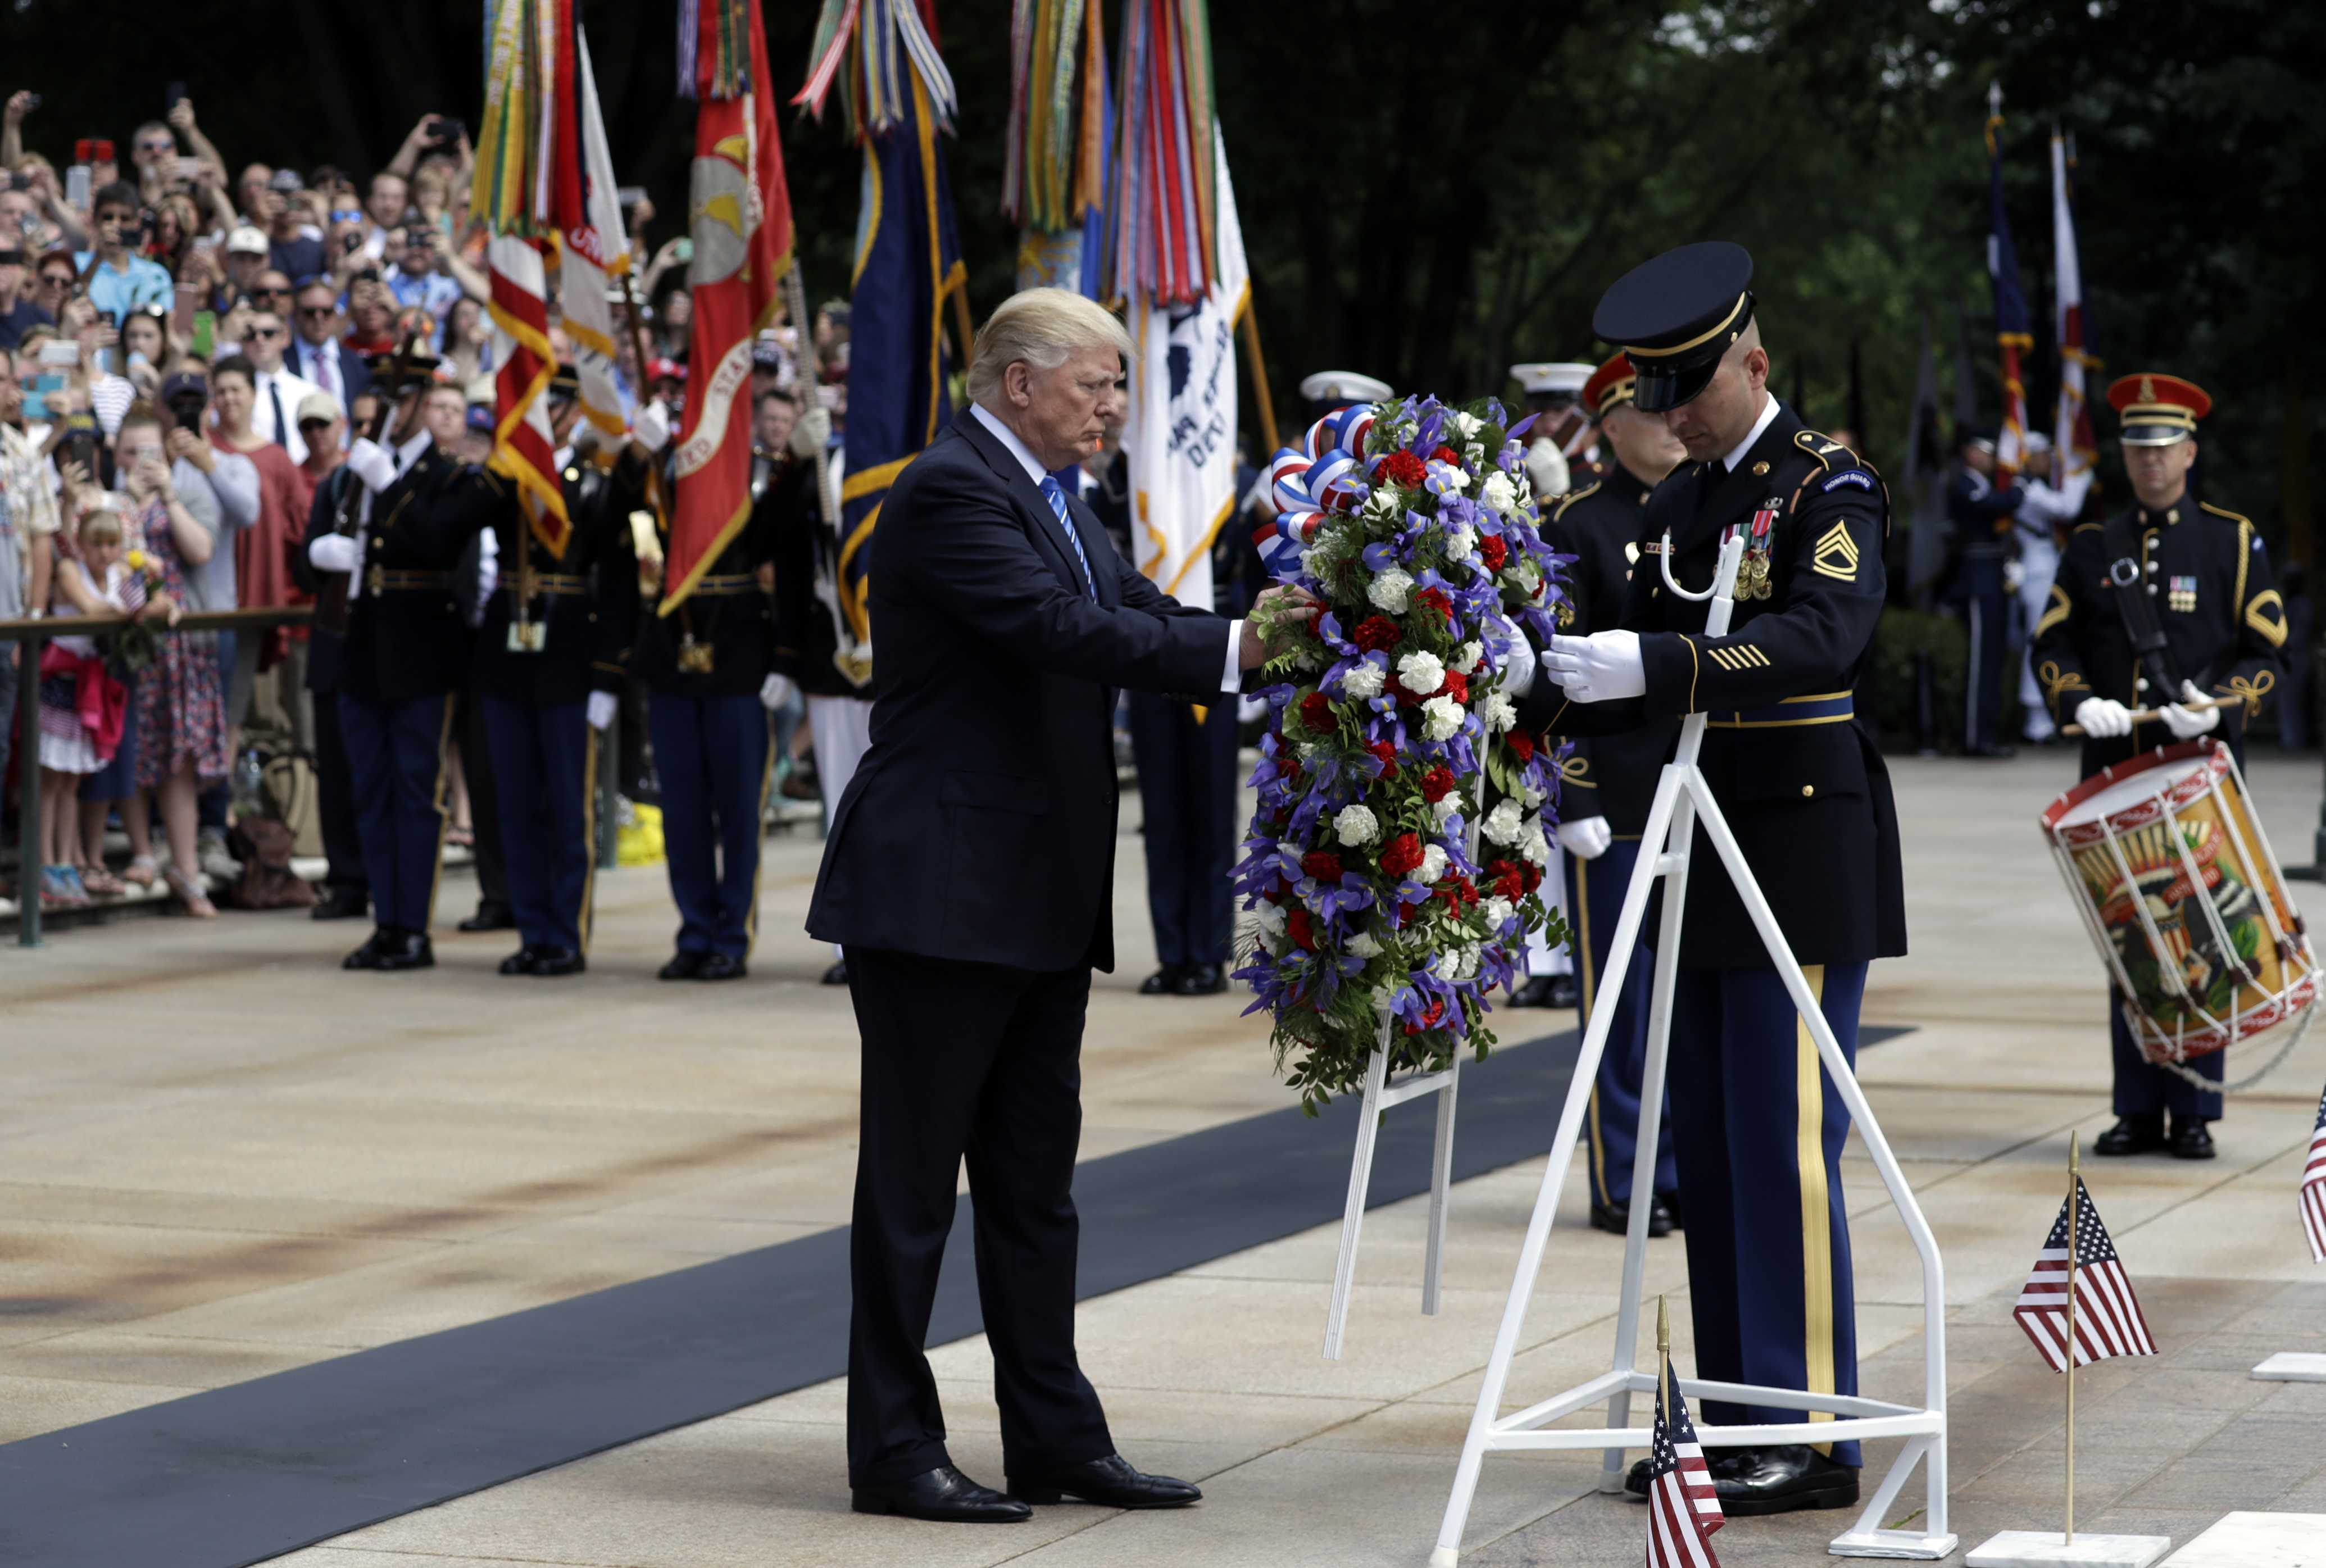 Trump honors fallen and families in Memorial Day address